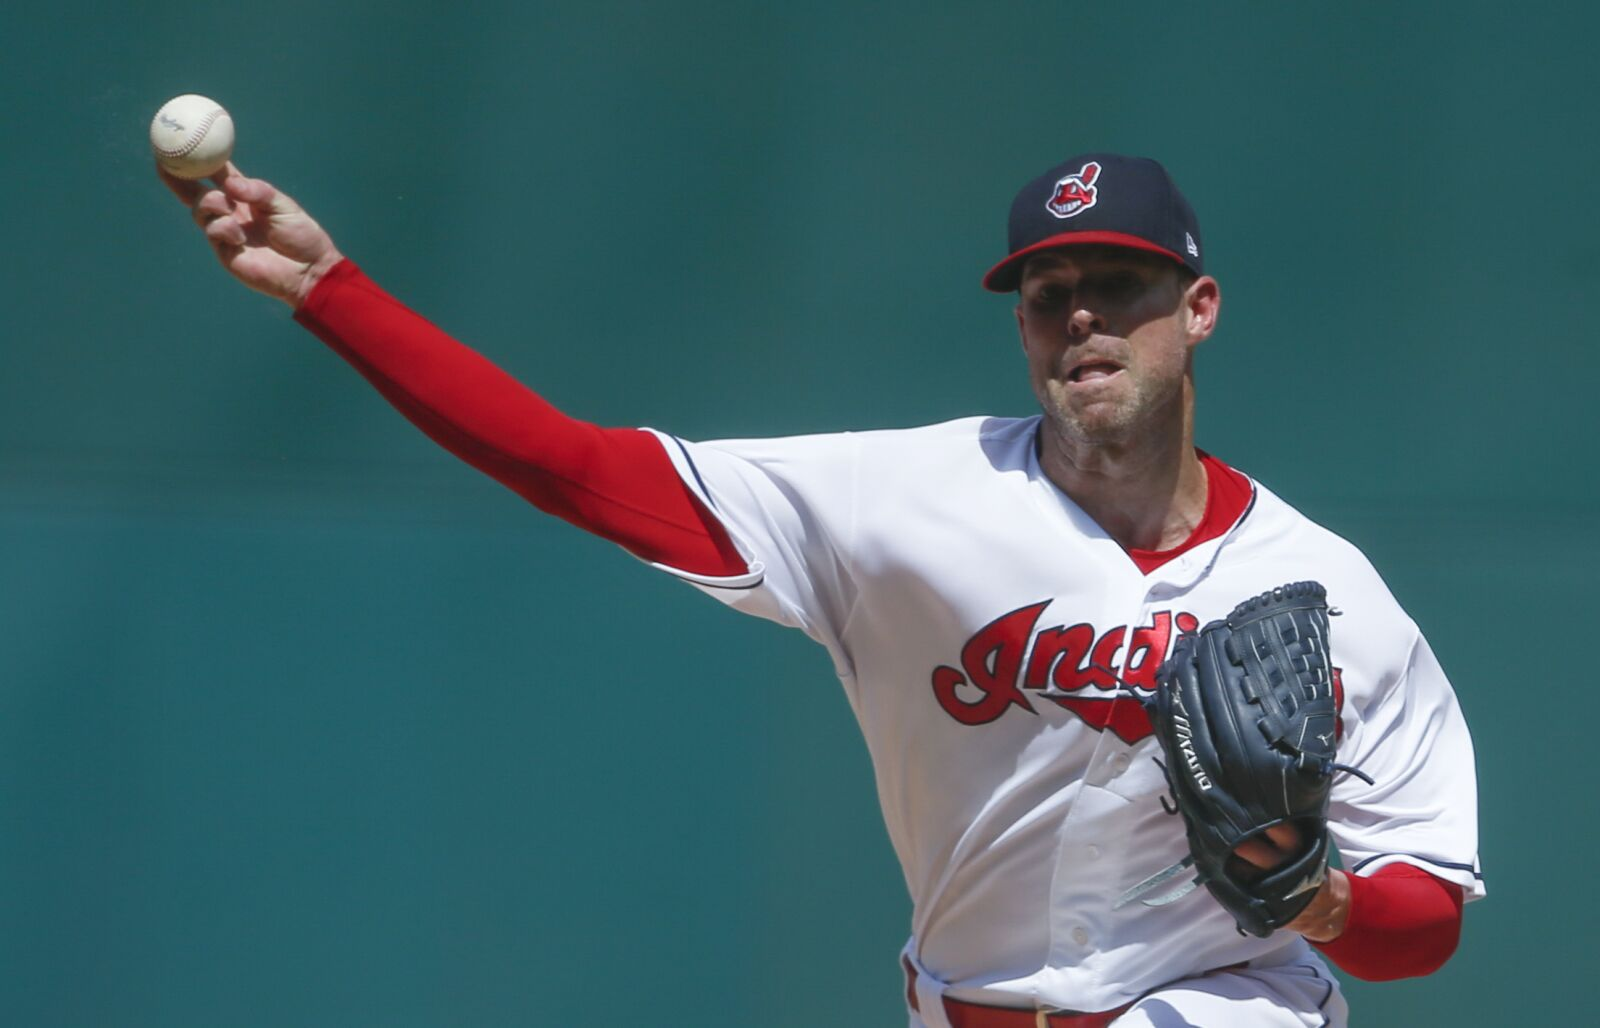 Cleveland Indians rumors: Mets trade for Corey Kluber looks unlikely